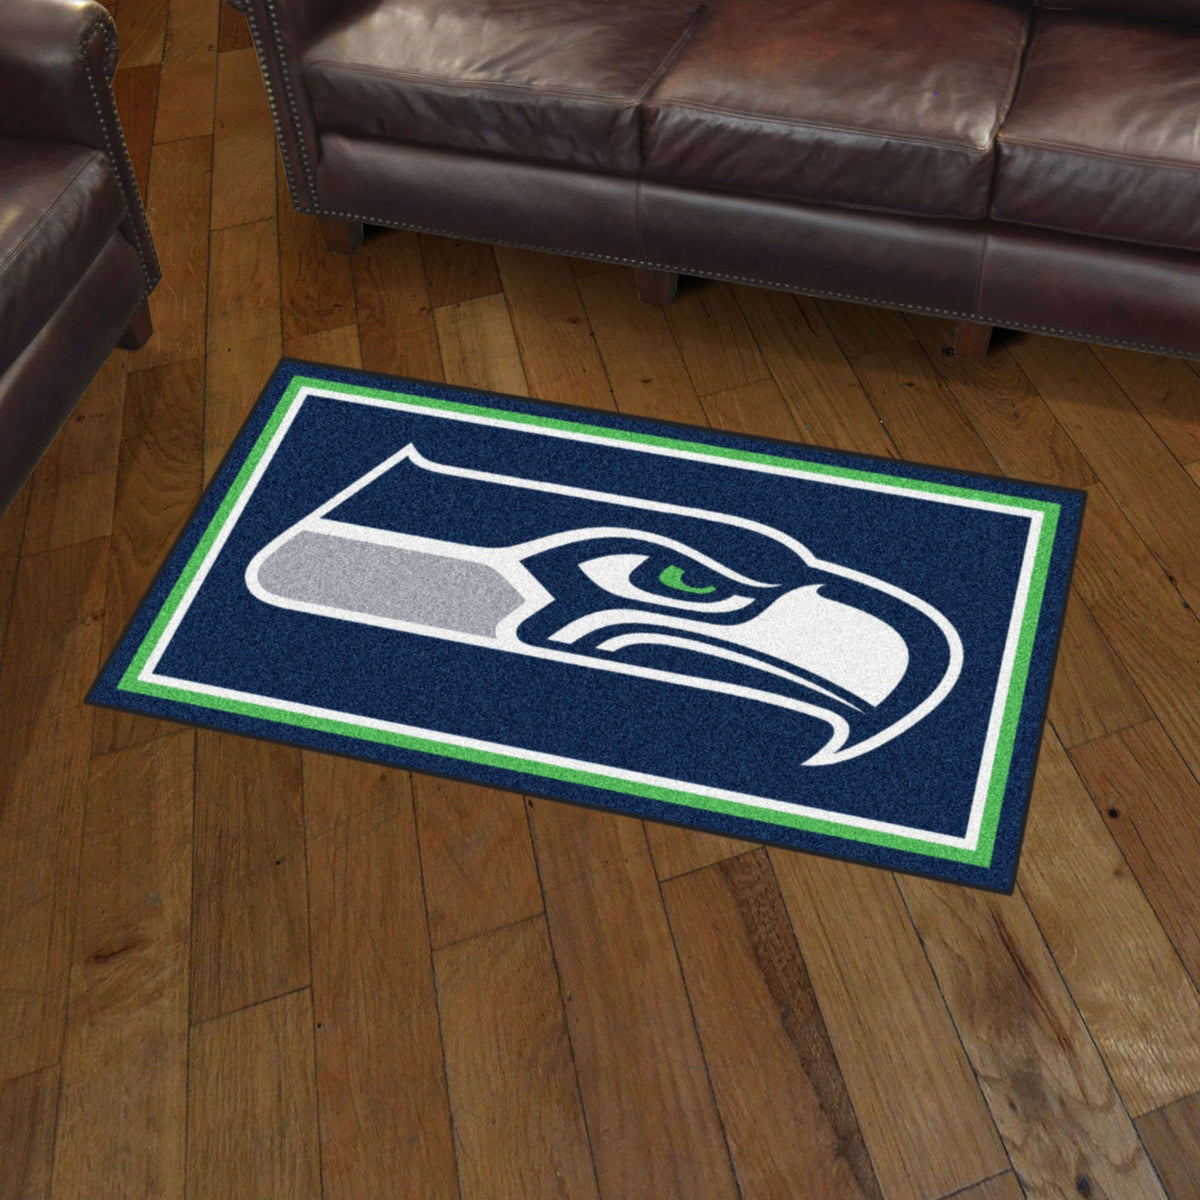 NFL - 3' x 5' Rug NFL Mats, Plush Rugs, 3x5 Rug, NFL, Home Fan Mats Seattle Seahawks